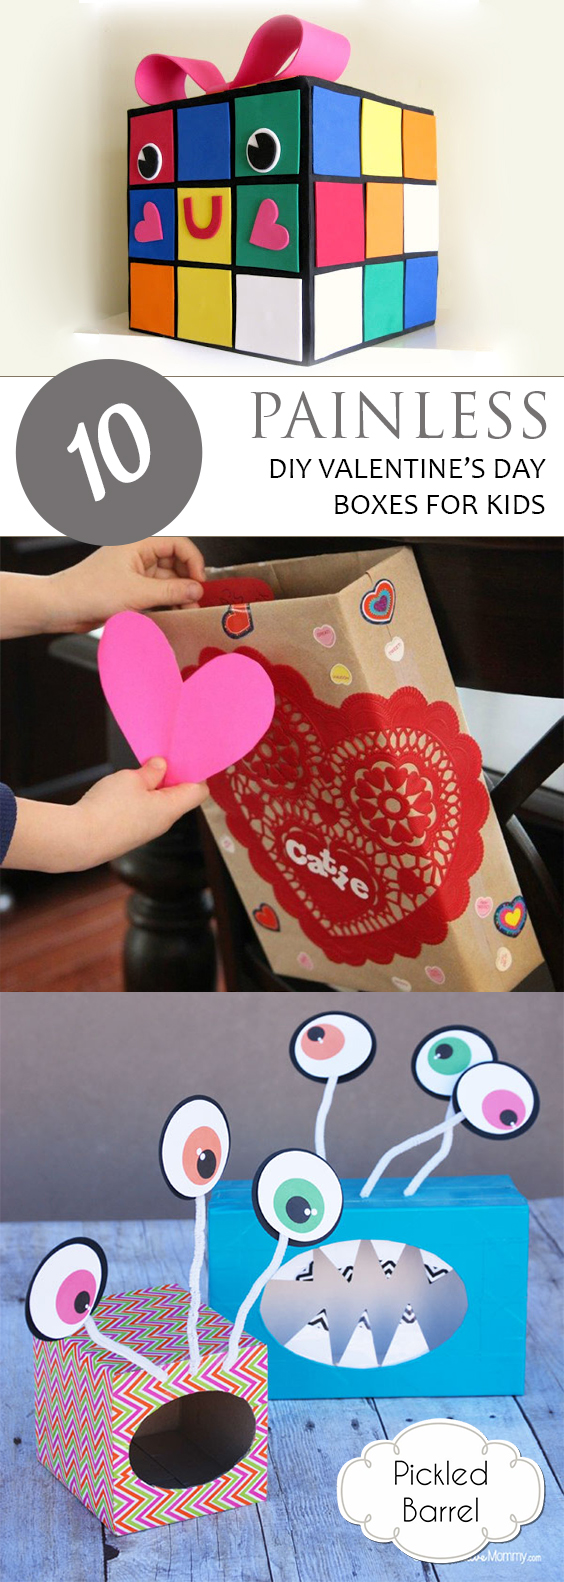 10 Painless Diy Valentines Day Boxes For Kids Pickled Barrel